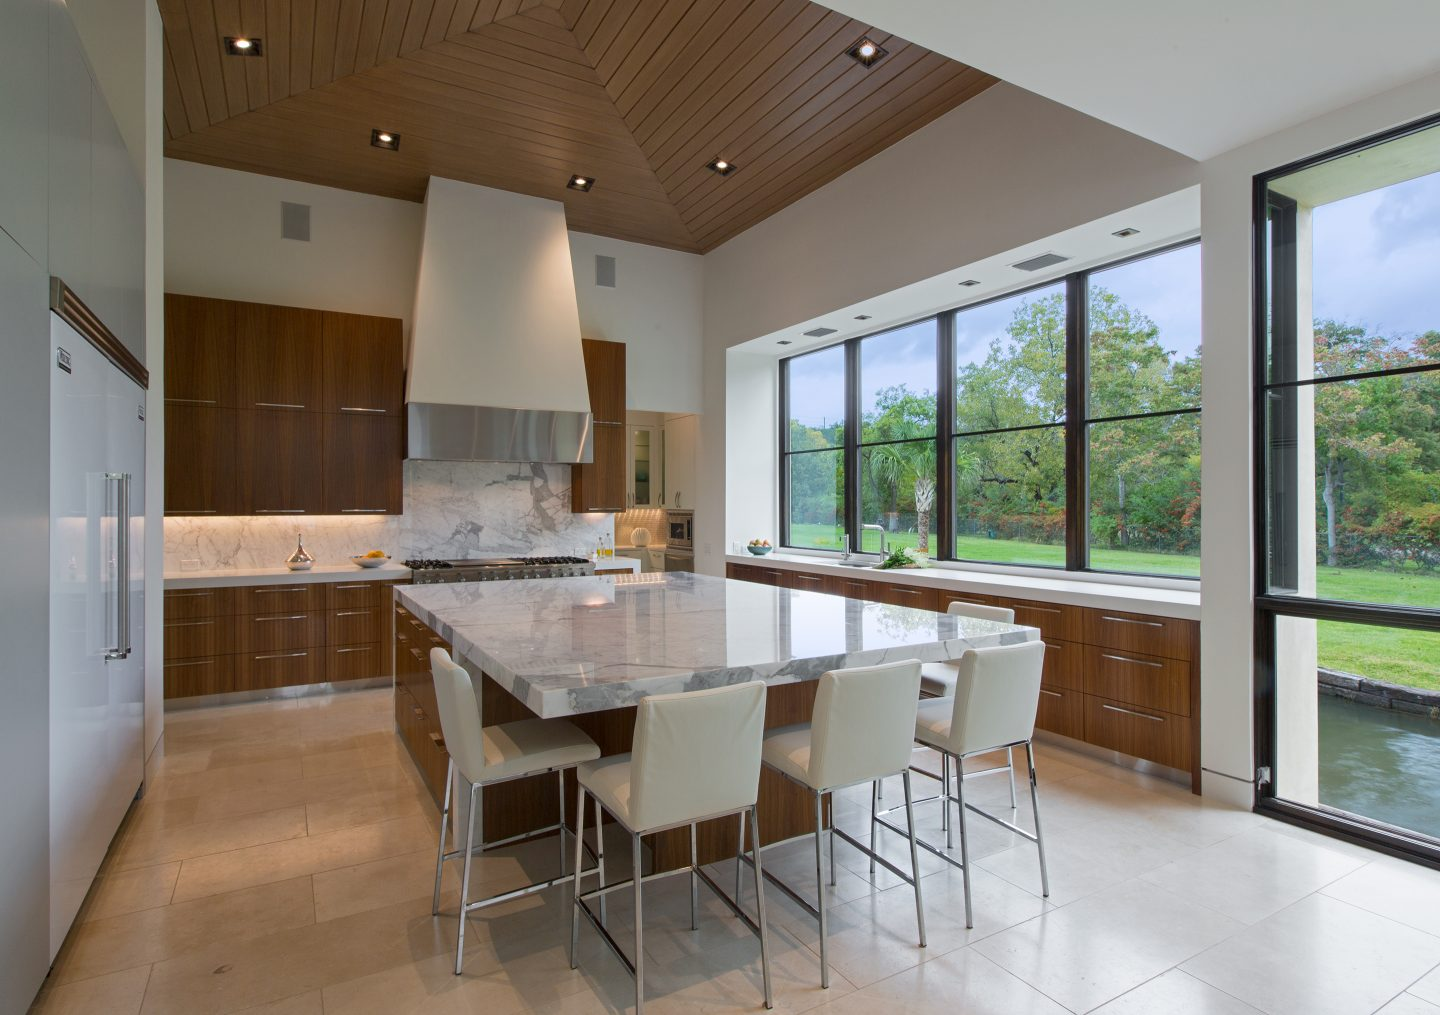 Lake Austin Residence Kitchen